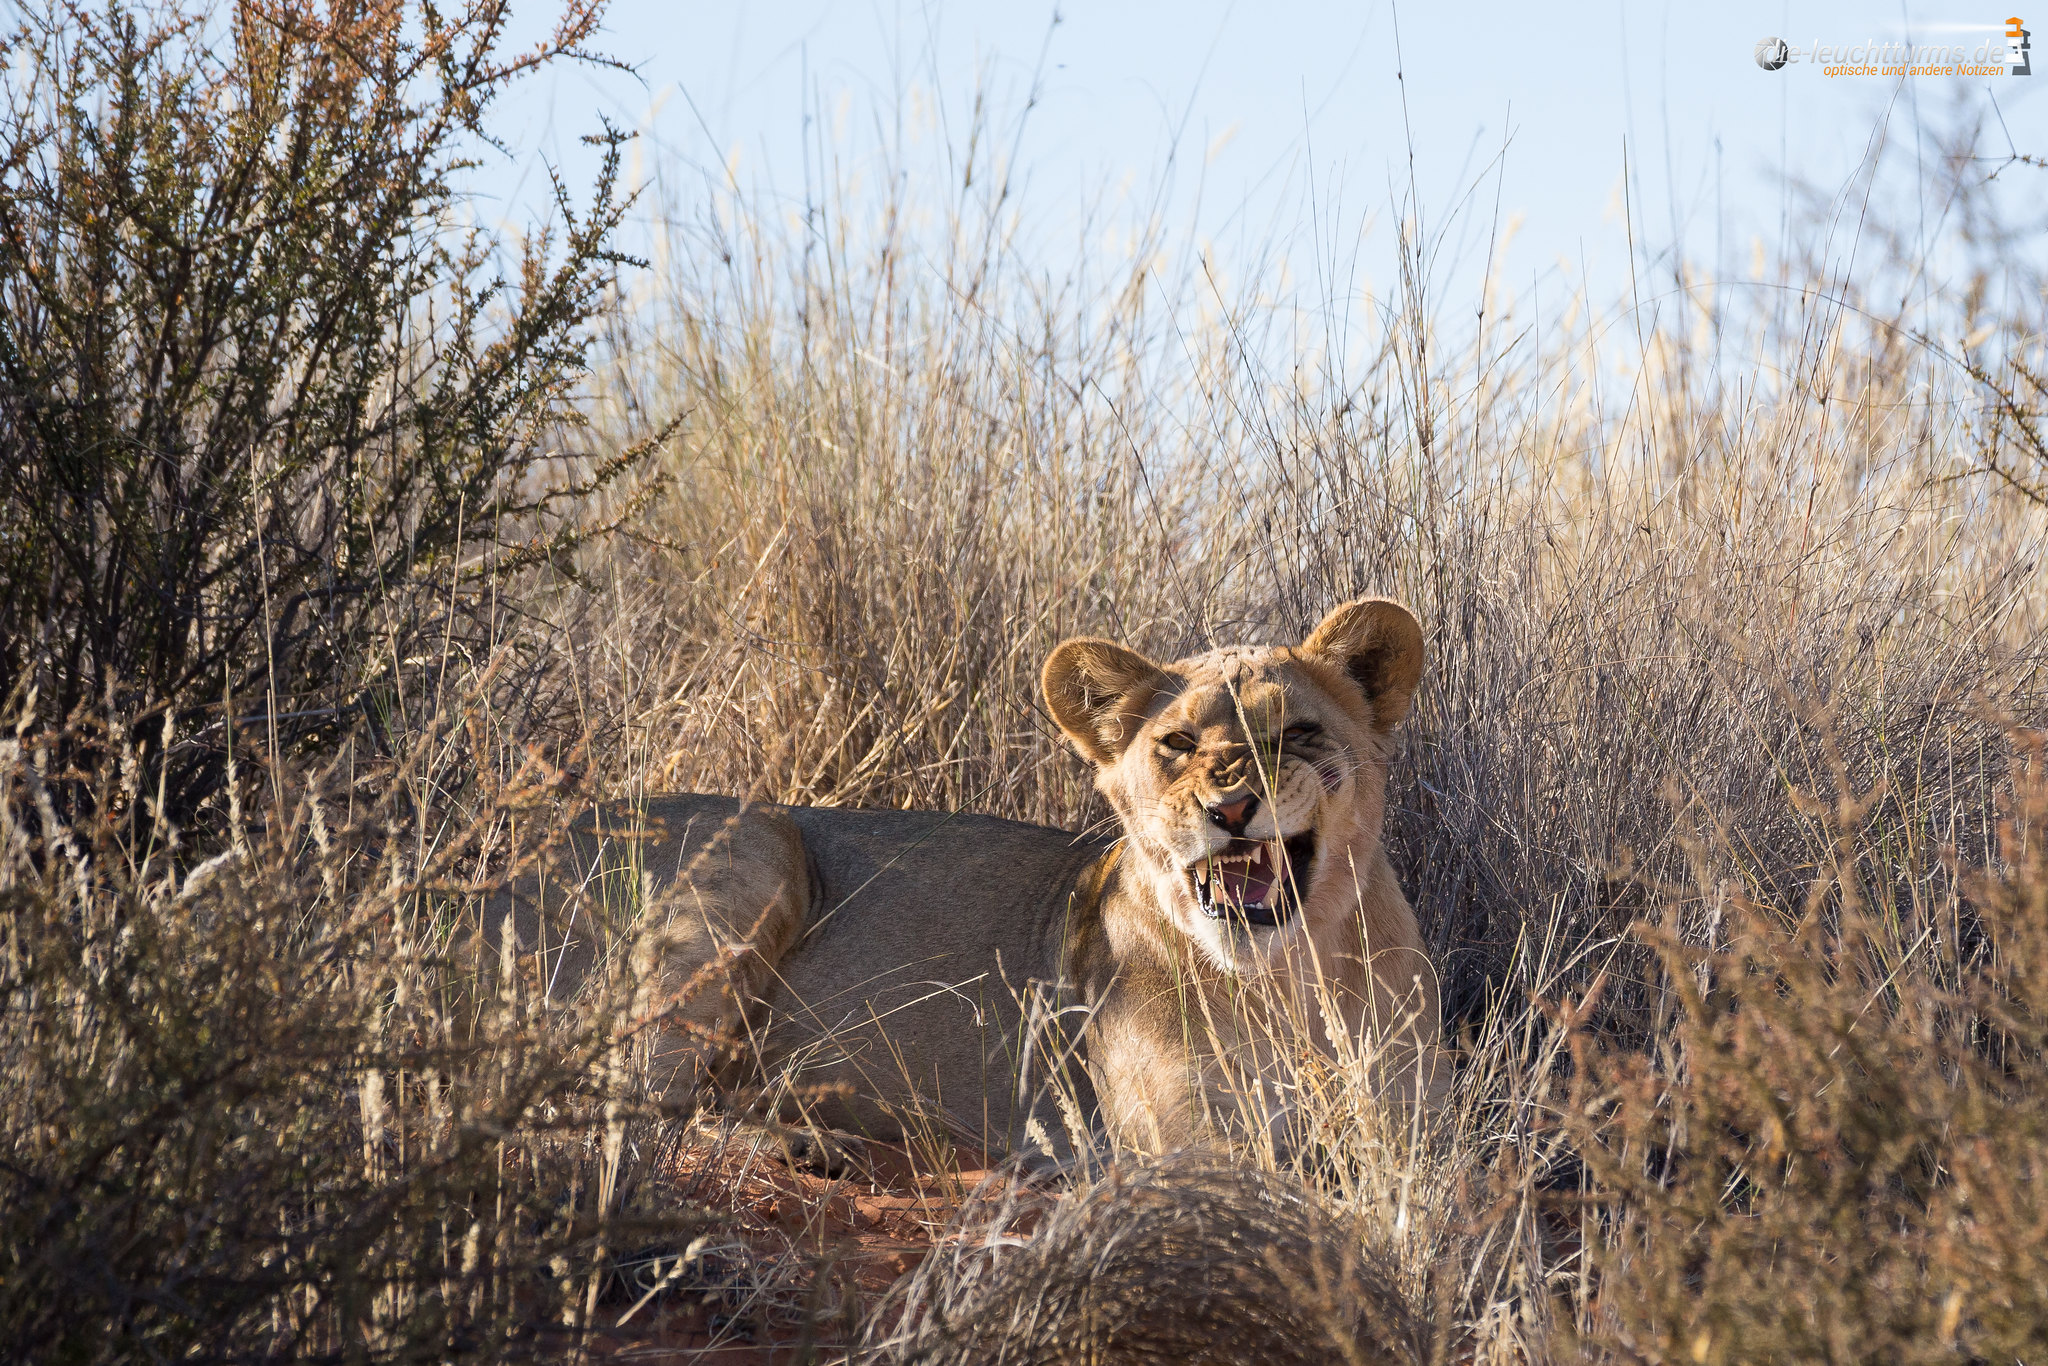 Kalahari Lion (female)